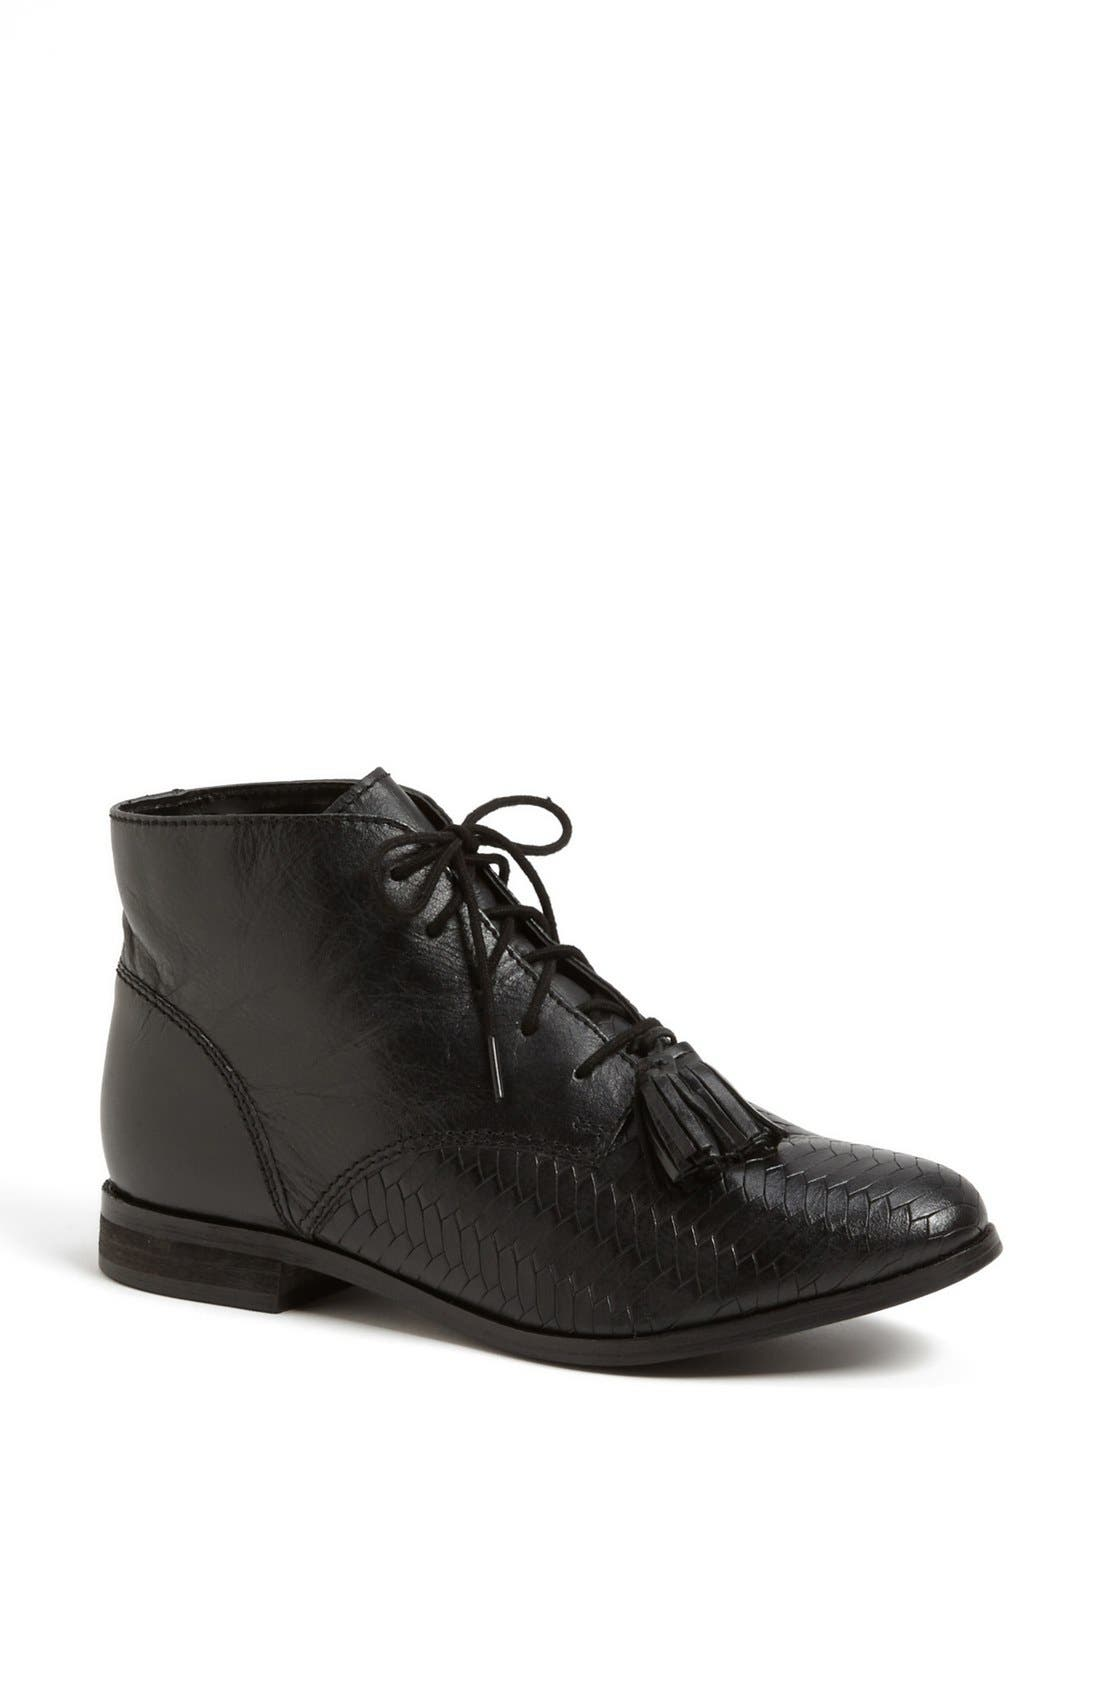 Alternate Image 1 Selected - Topshop 'Mo' Ankle Boot